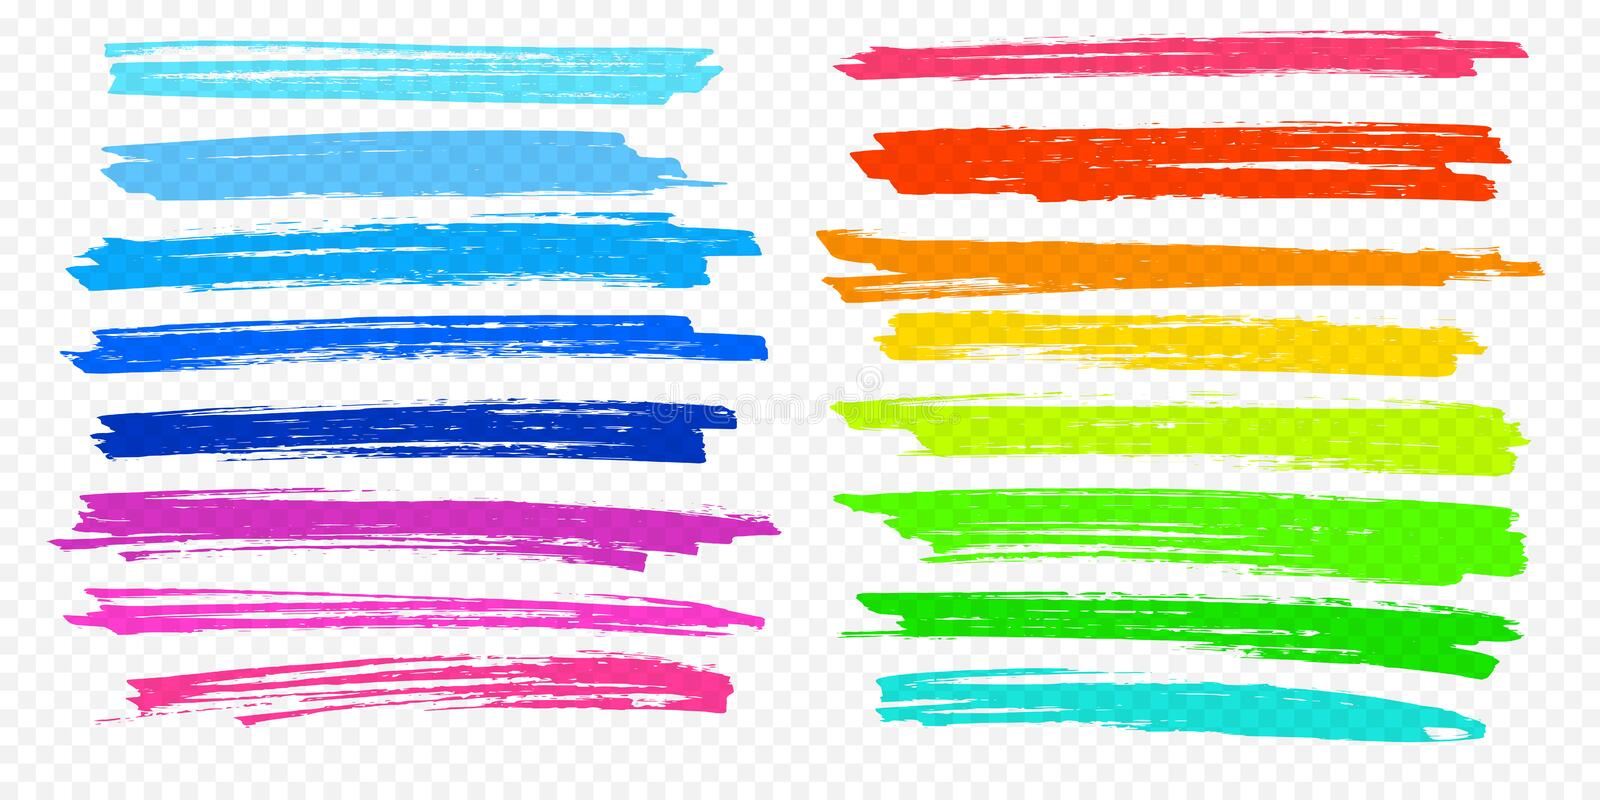 Highlight brush stroke set vector color marker pen lines underline transparent background. Highlight brush underline hand drawn strokes set. Vector marker or